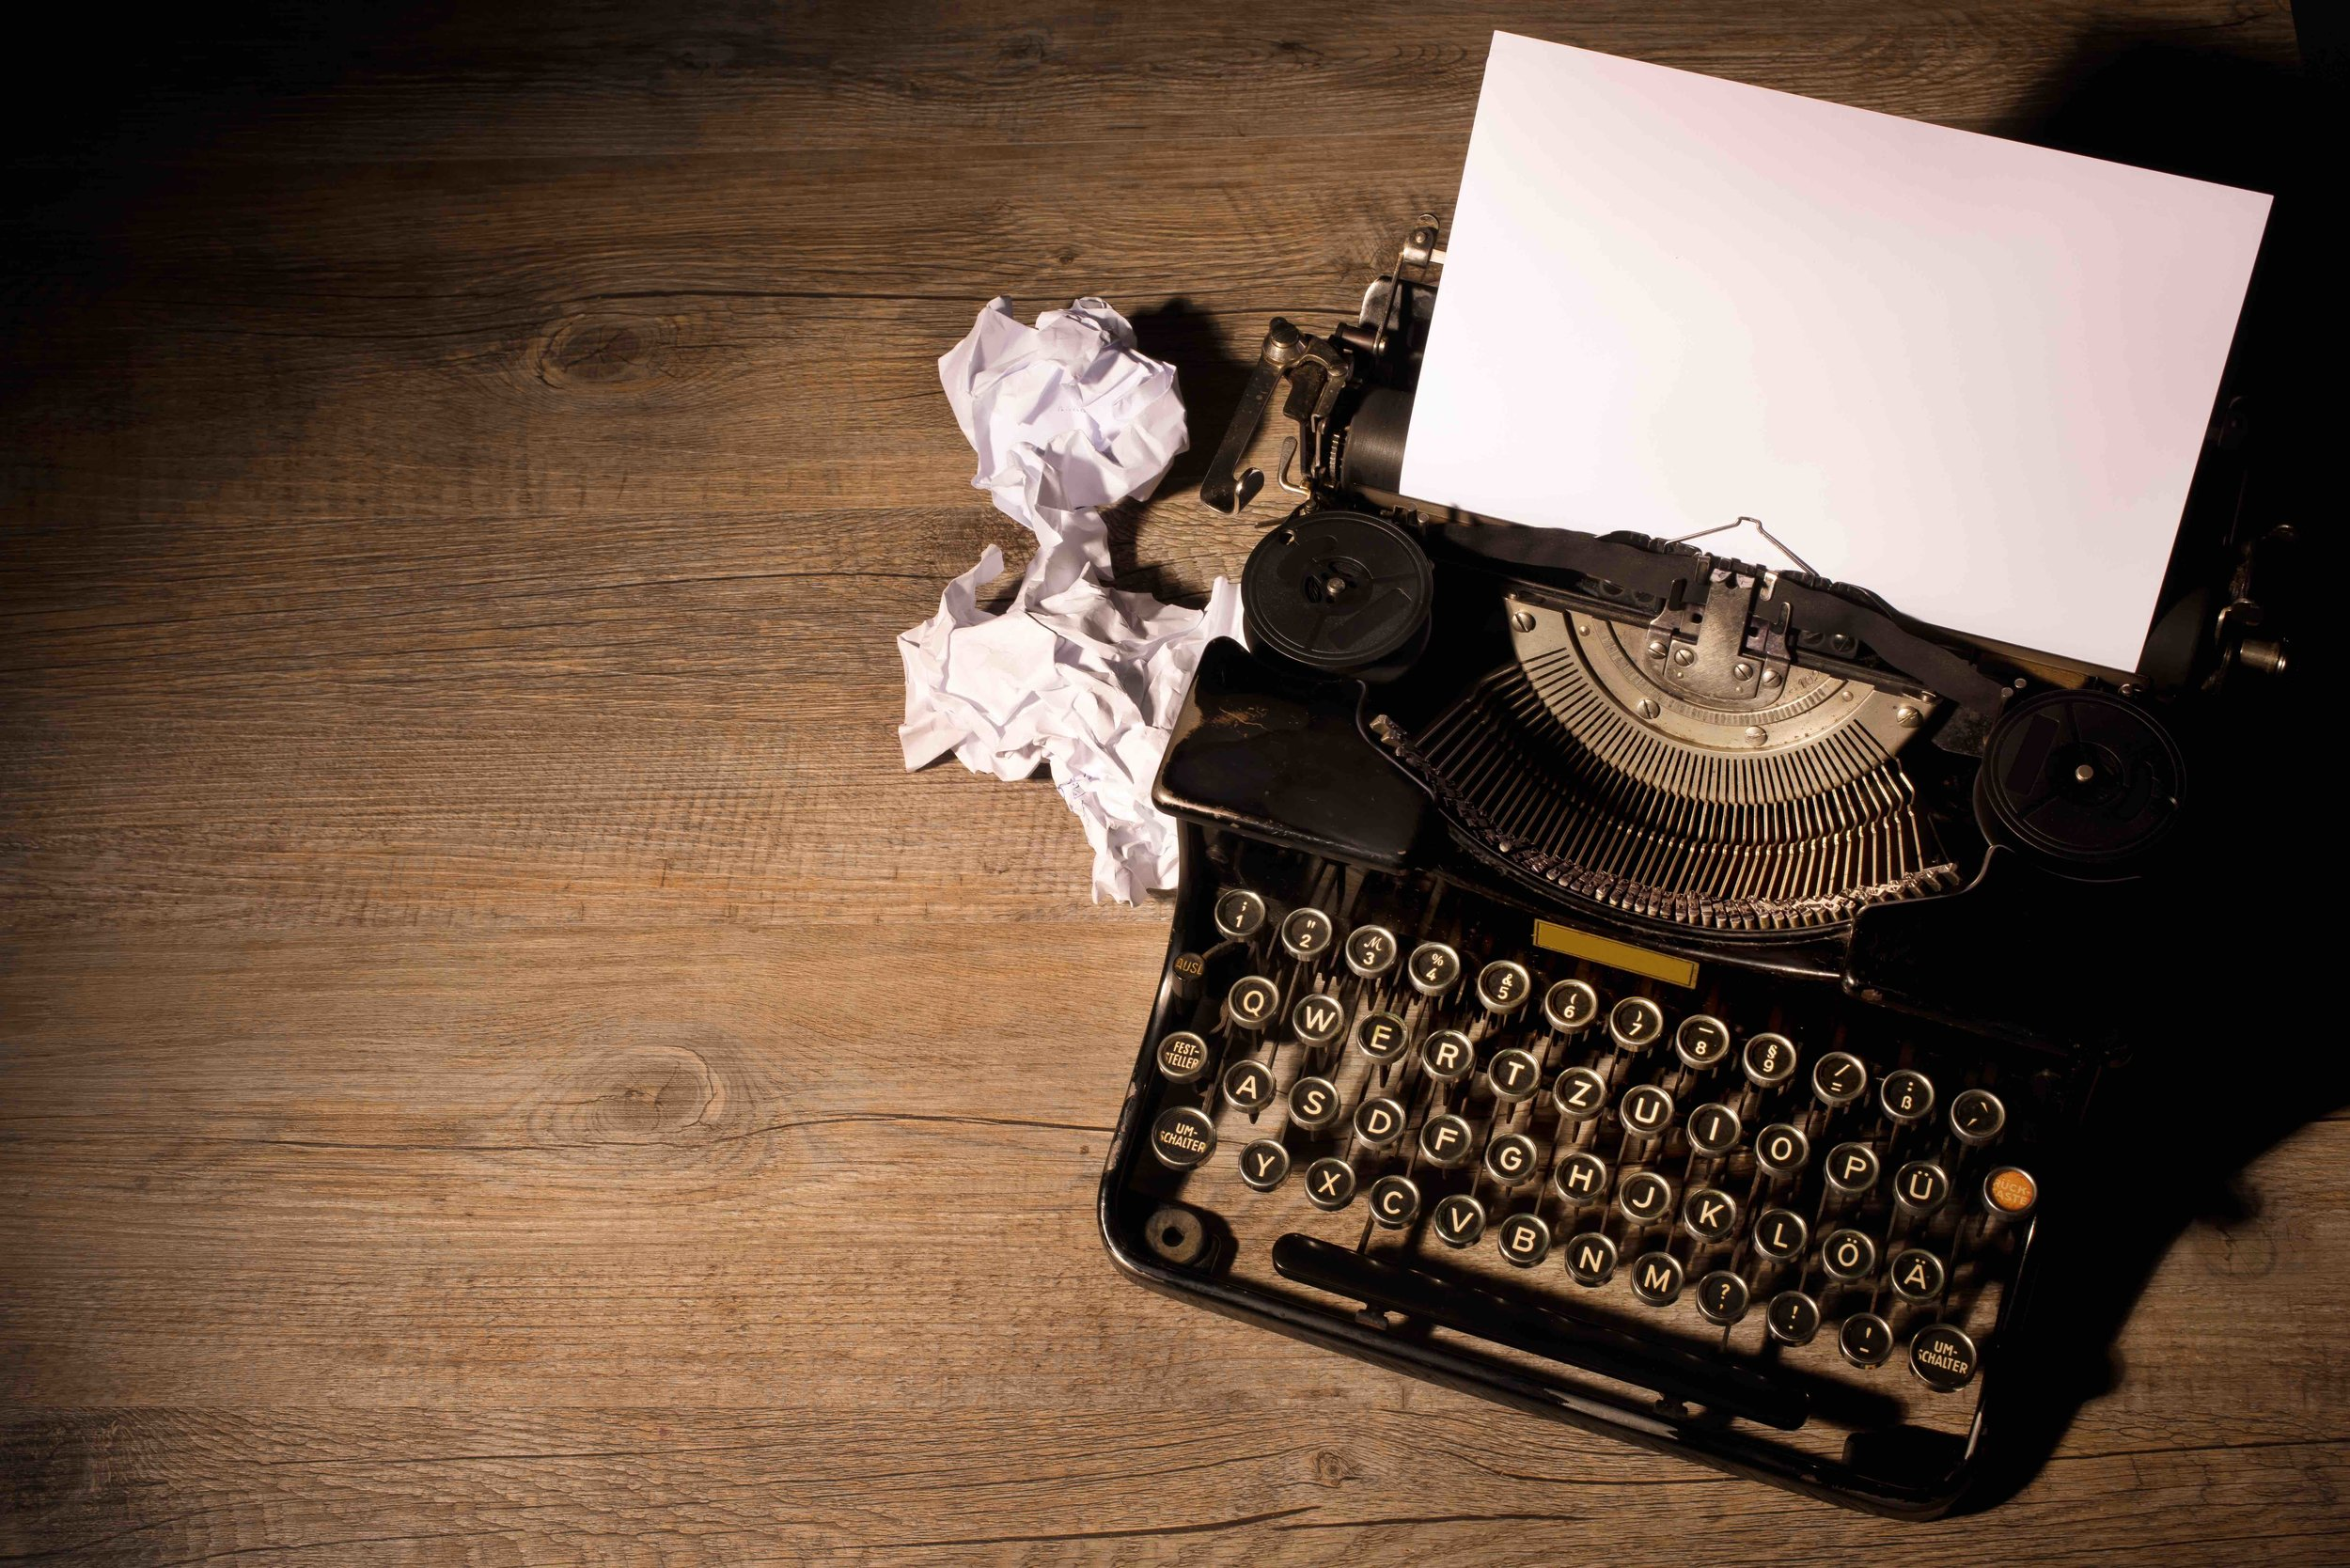 Can authors self-edit? An editor's perspective  by Leslie Watts at Writership.com.